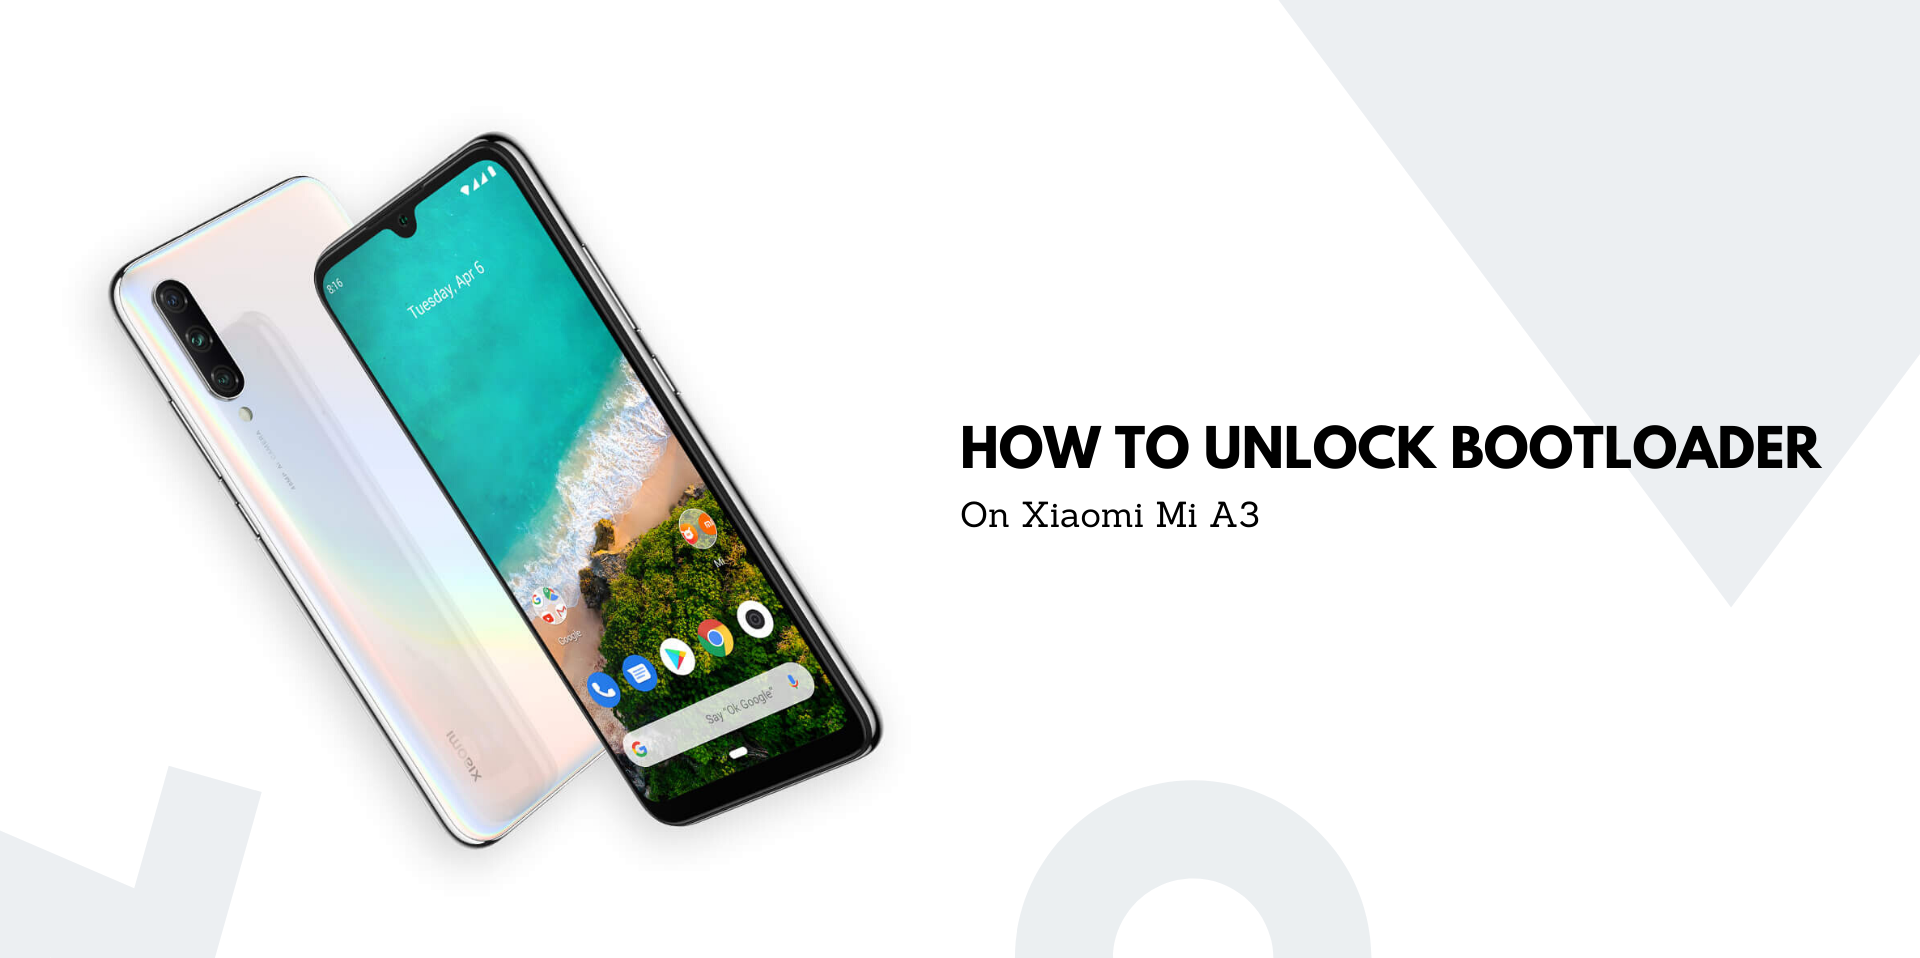 How To Unlock Bootloader On Xiaomi Mi A3